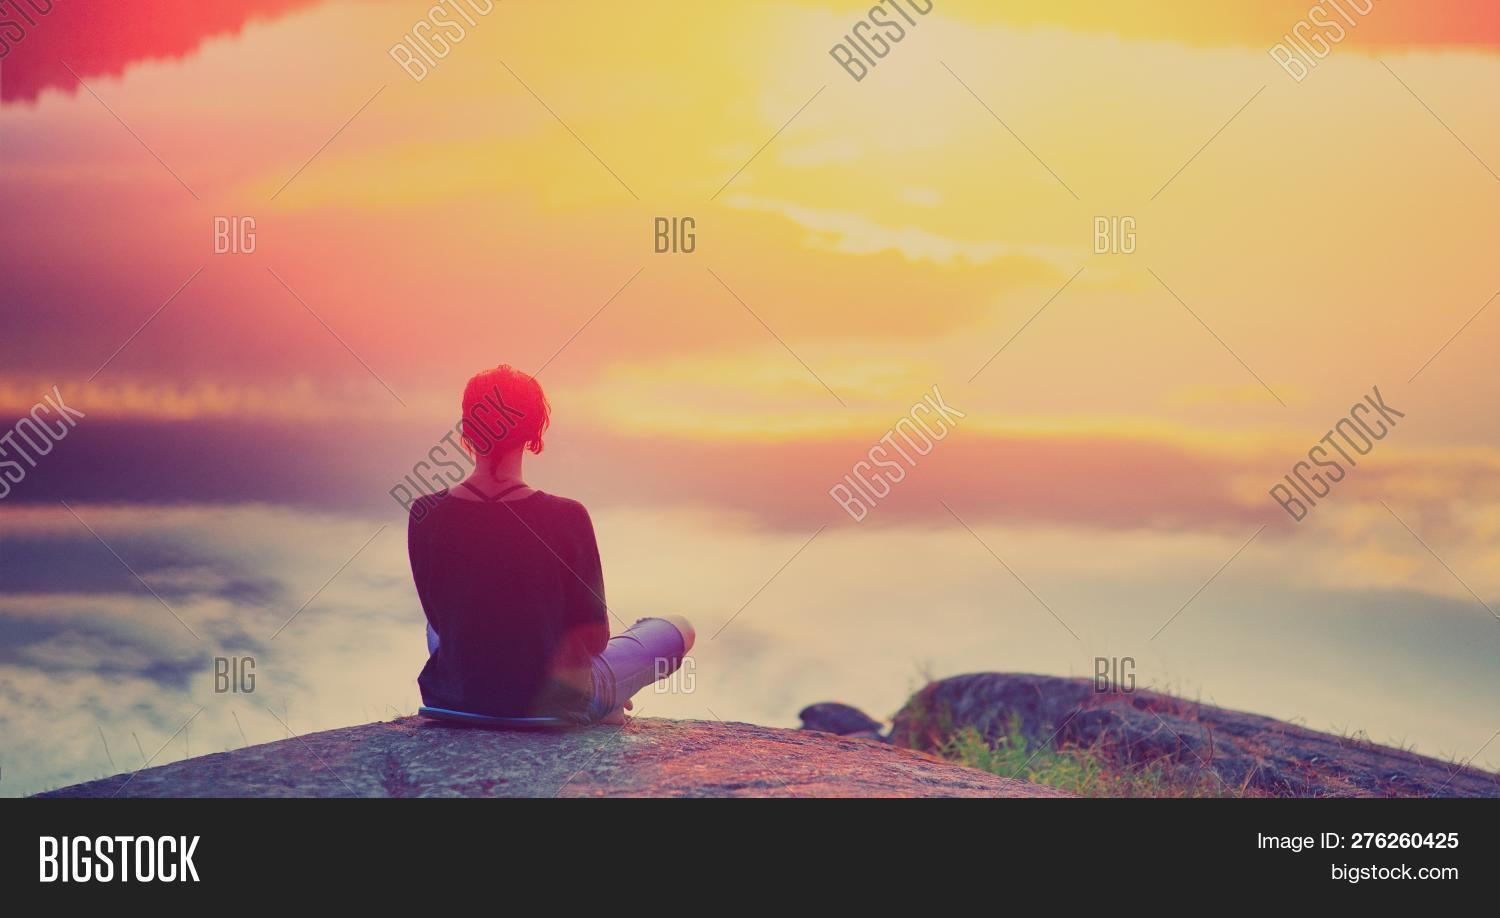 adult,alone,back,balance,beach,calm,dusk,environment,female,freedom,girl,happy,health,healthy,holiday,hope,inner,landscape,life,lifestyle,lotus,morning,mountain,nature,outdoor,peace,peaceful,people,person,reborn,river,scene,silhouette,sitting,sky,solitary,solitude,success,summer,sun,sunrise,sunset,travel,view,water,woman,yoga,young,zen